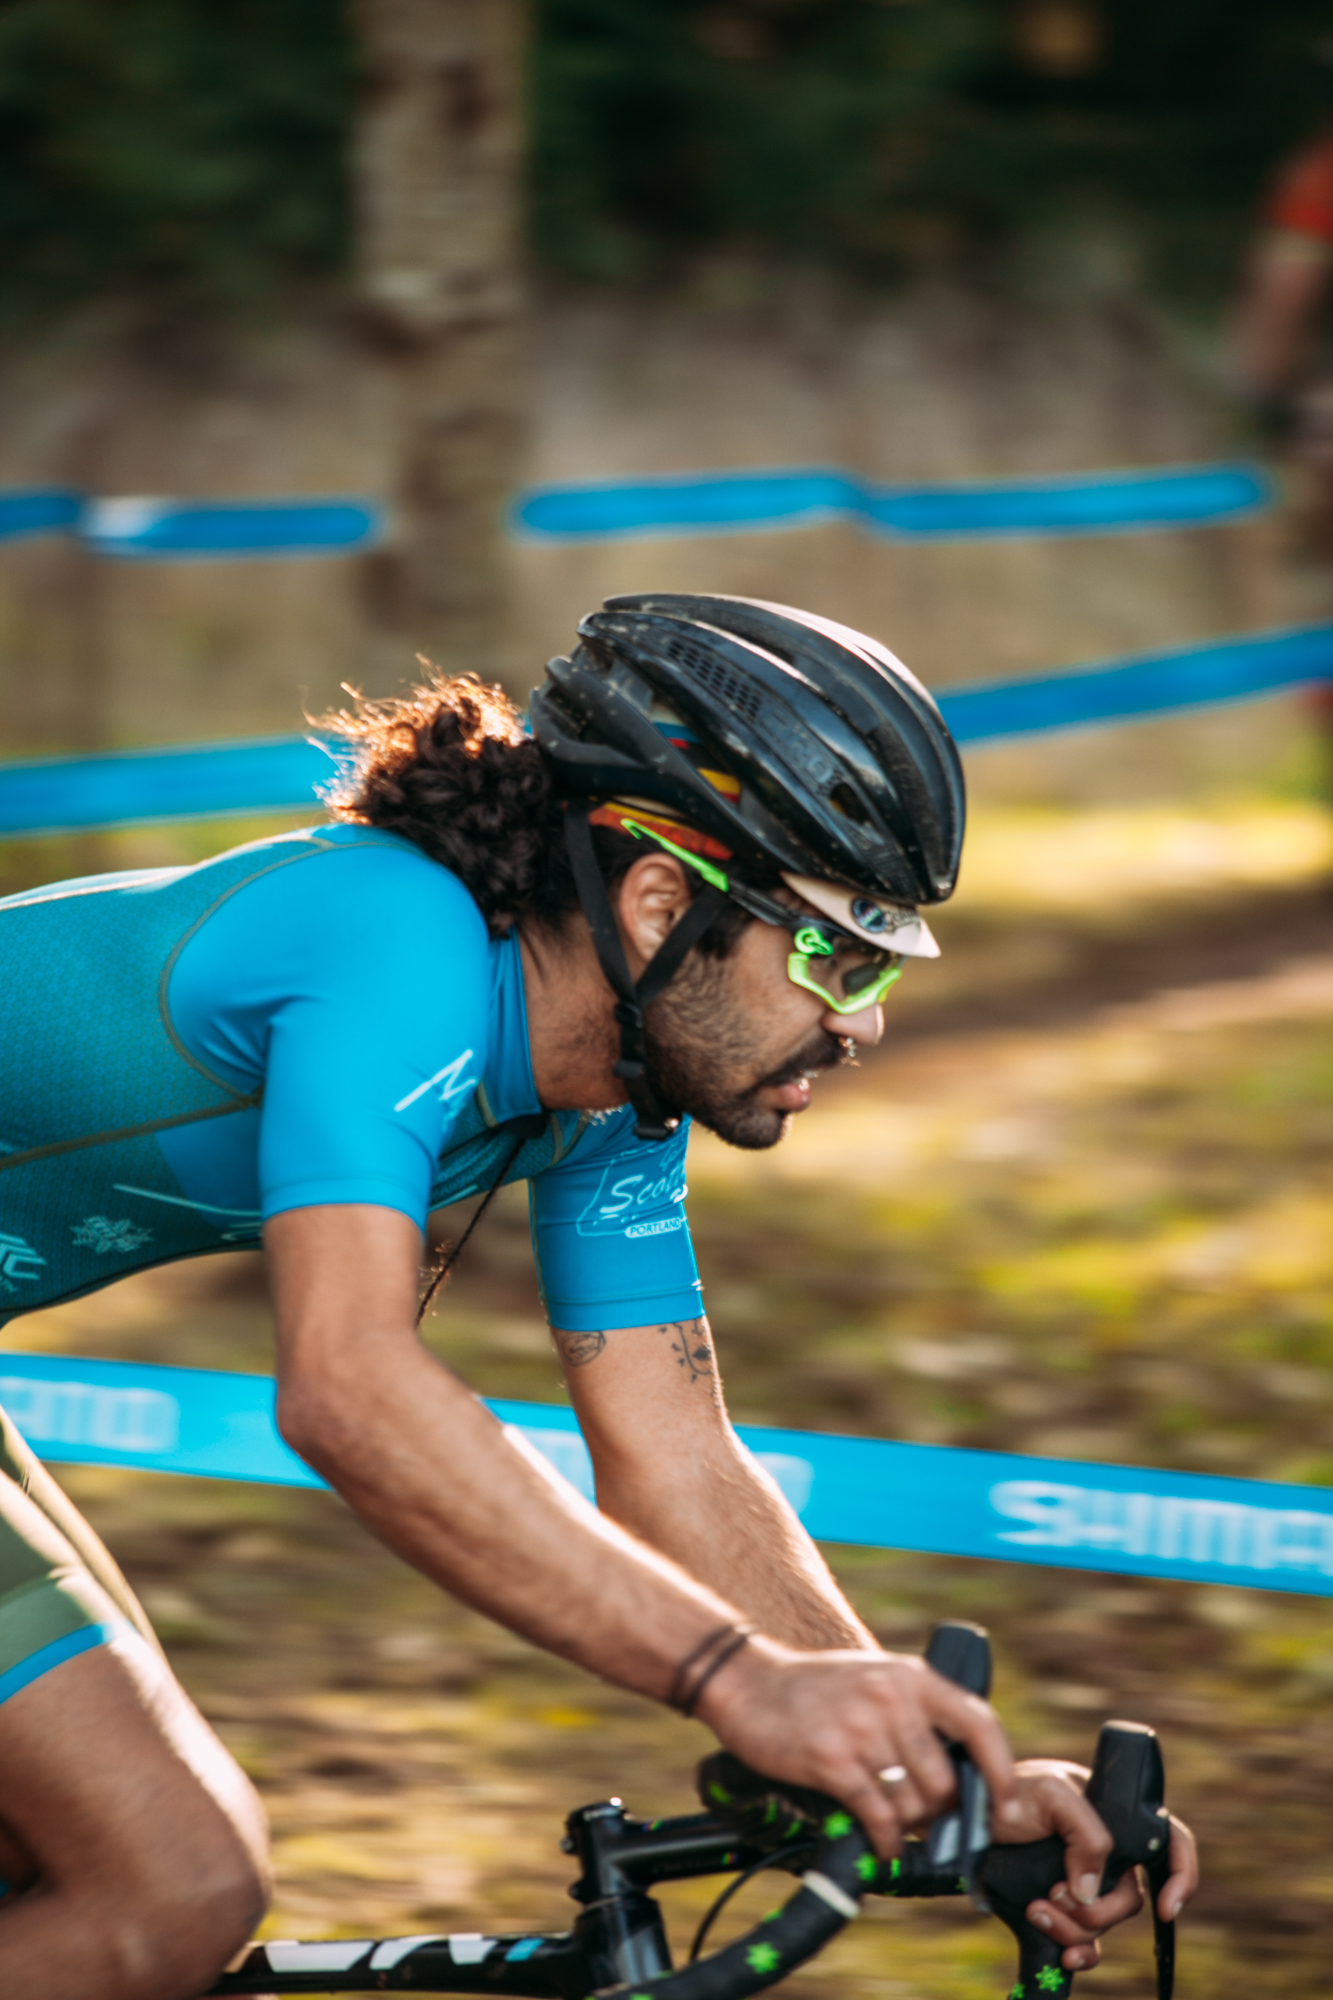 Cyclocross18_CCCX_RainierHS-139-mettlecycling.jpg